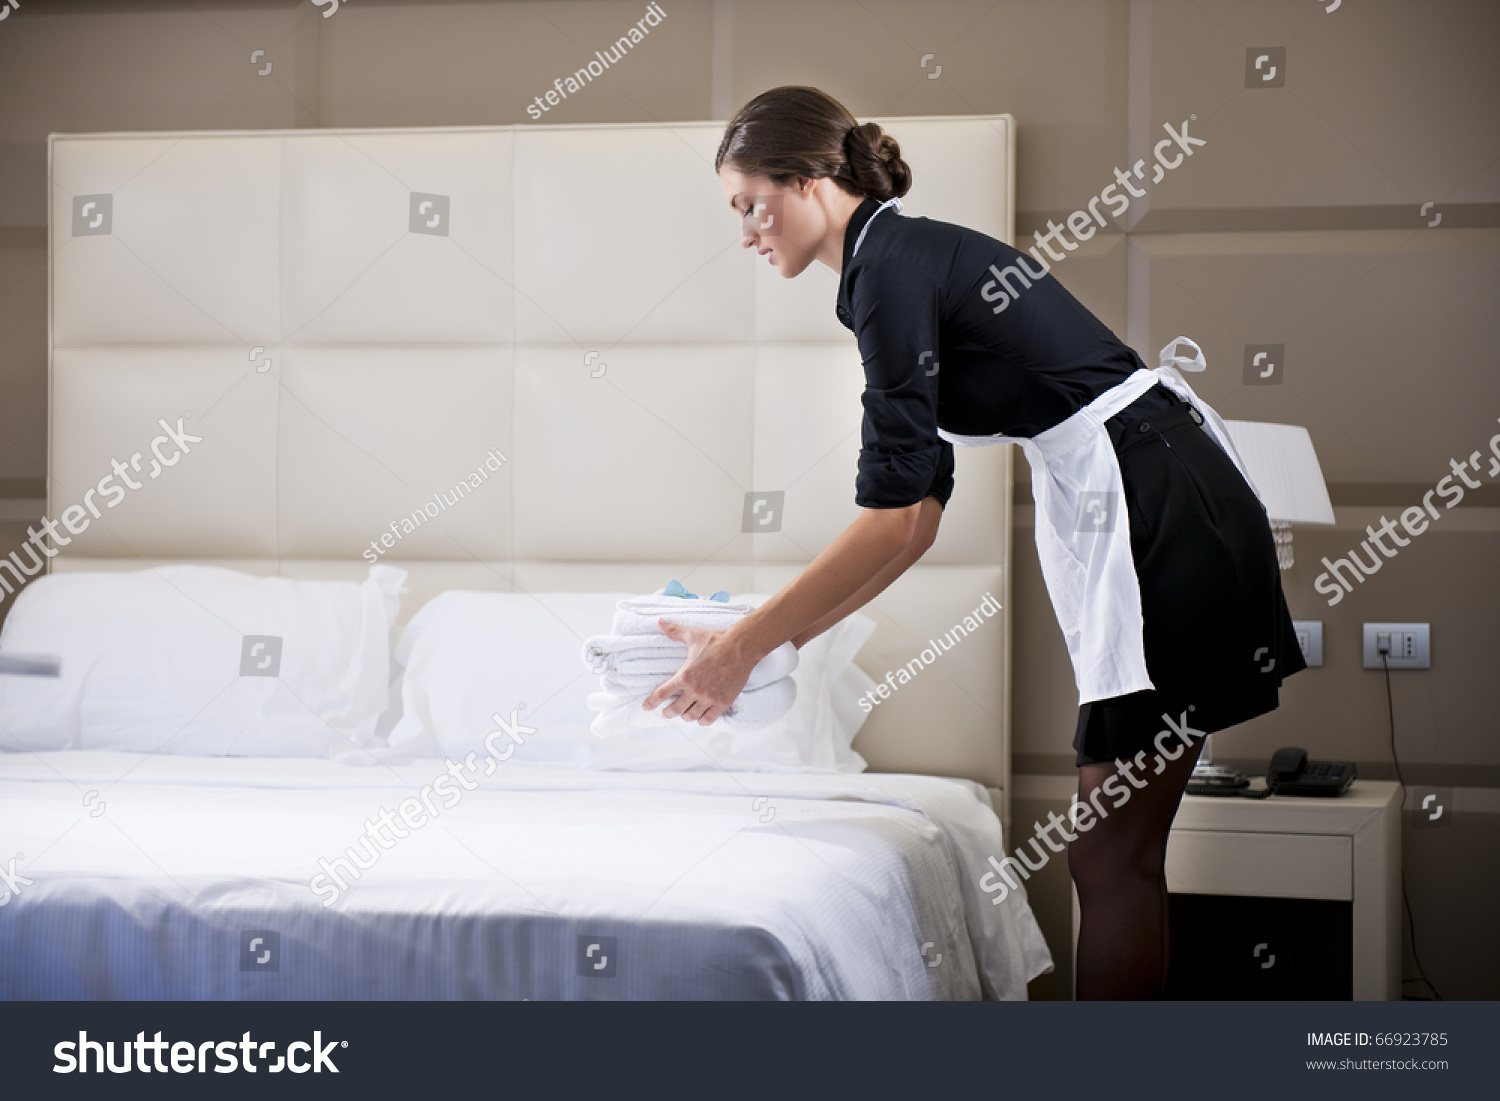 maid making bed hotel room stock photo 66923785 - shutterstock